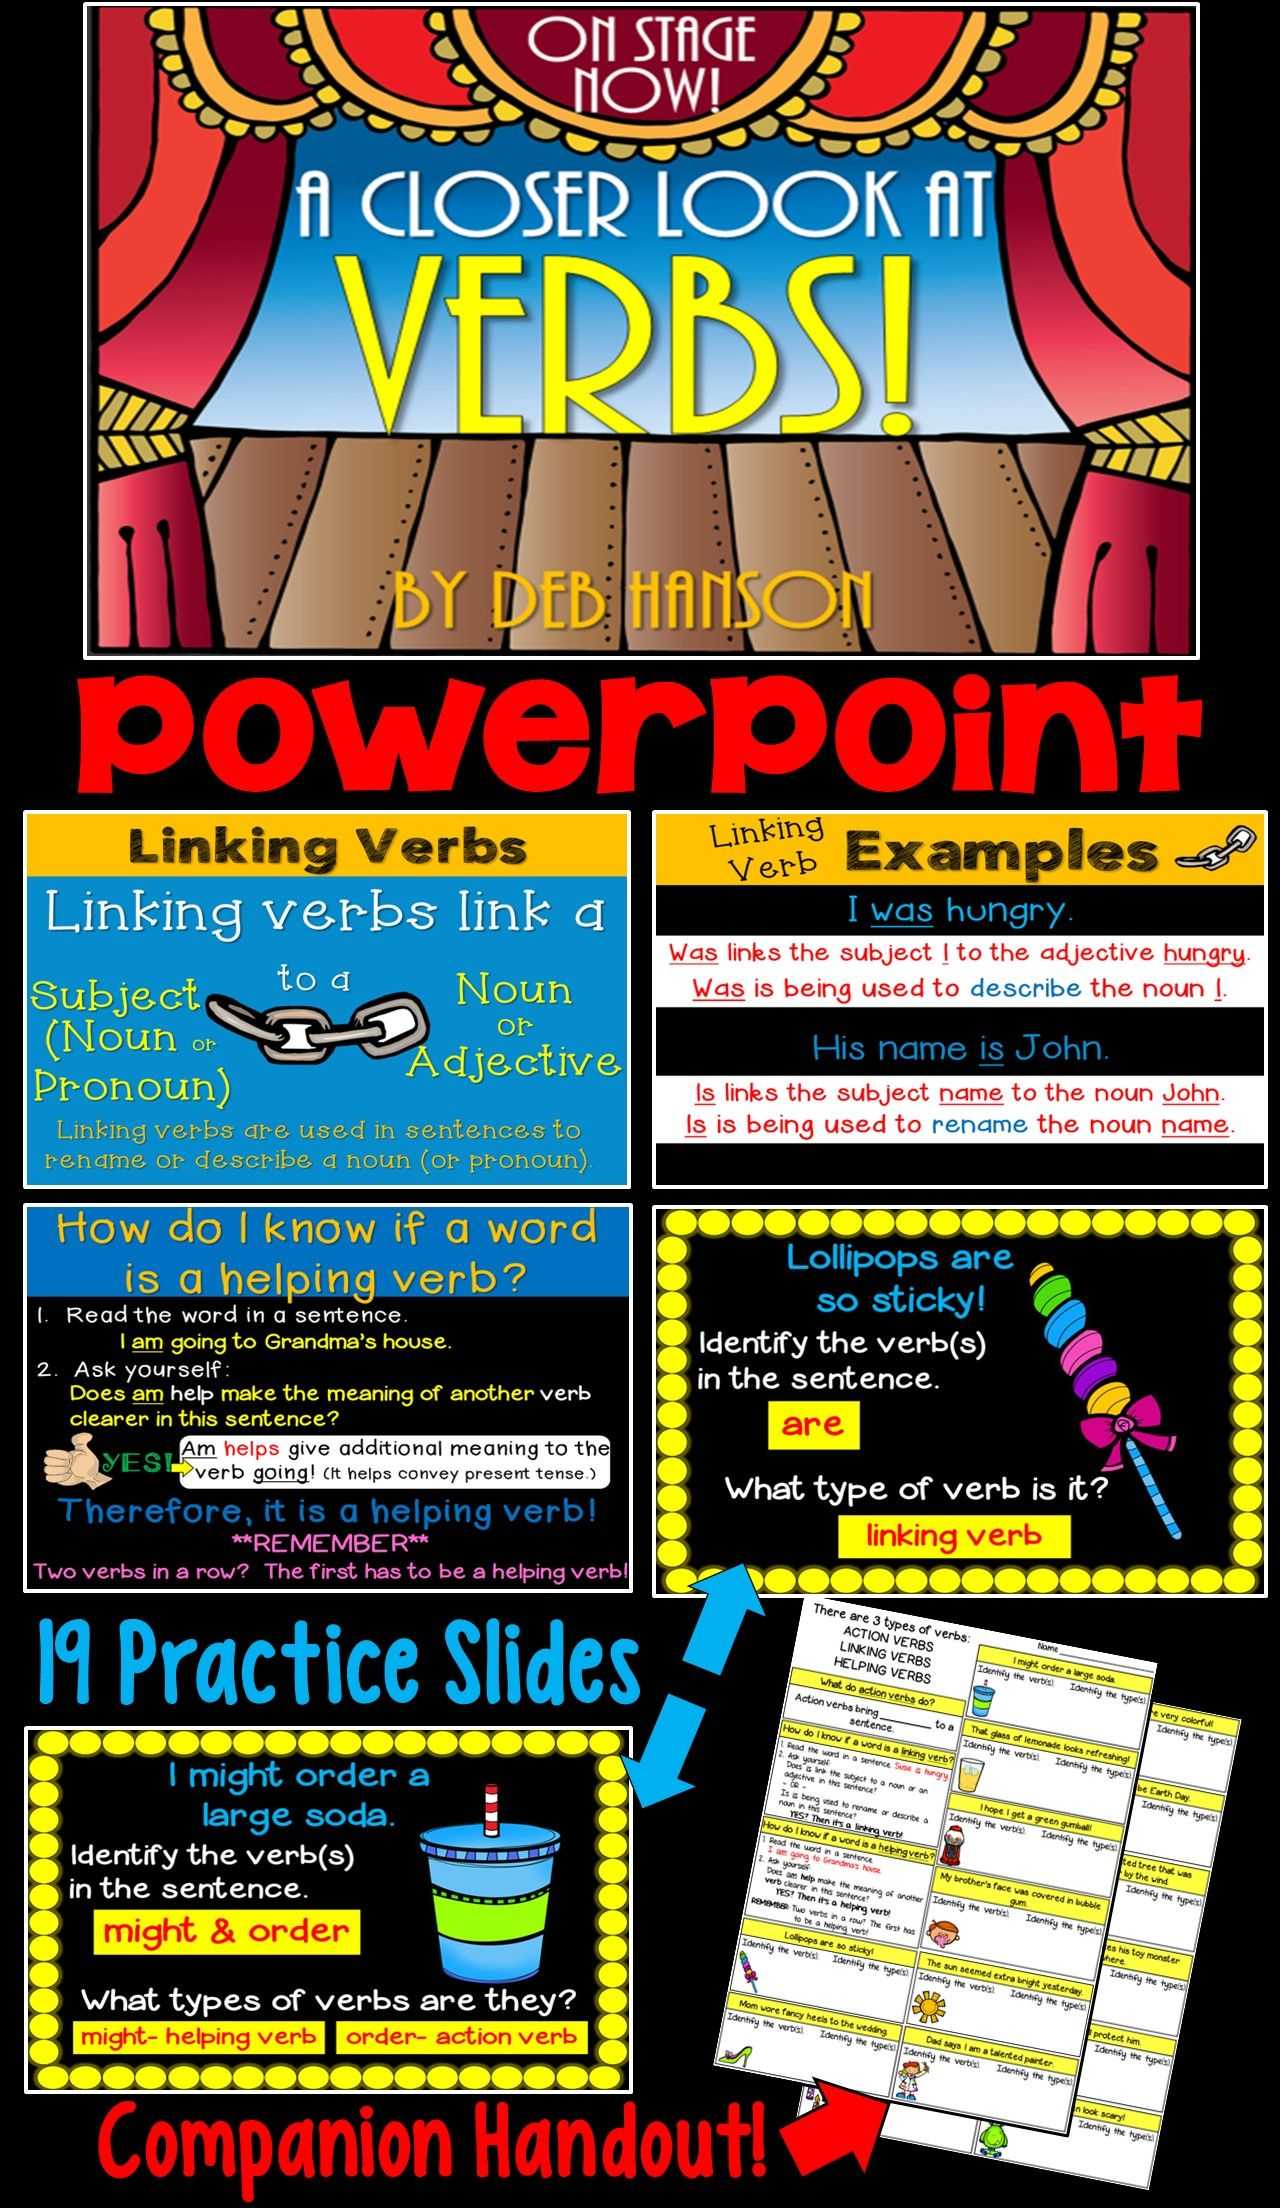 39 Slide Powerpoint Focusing On Action Verbs Linking Verbs And Helping Verbs Contains A Matching Handout Linking Verbs Helping Verbs Verbs Powerpoint [ 2208 x 1280 Pixel ]